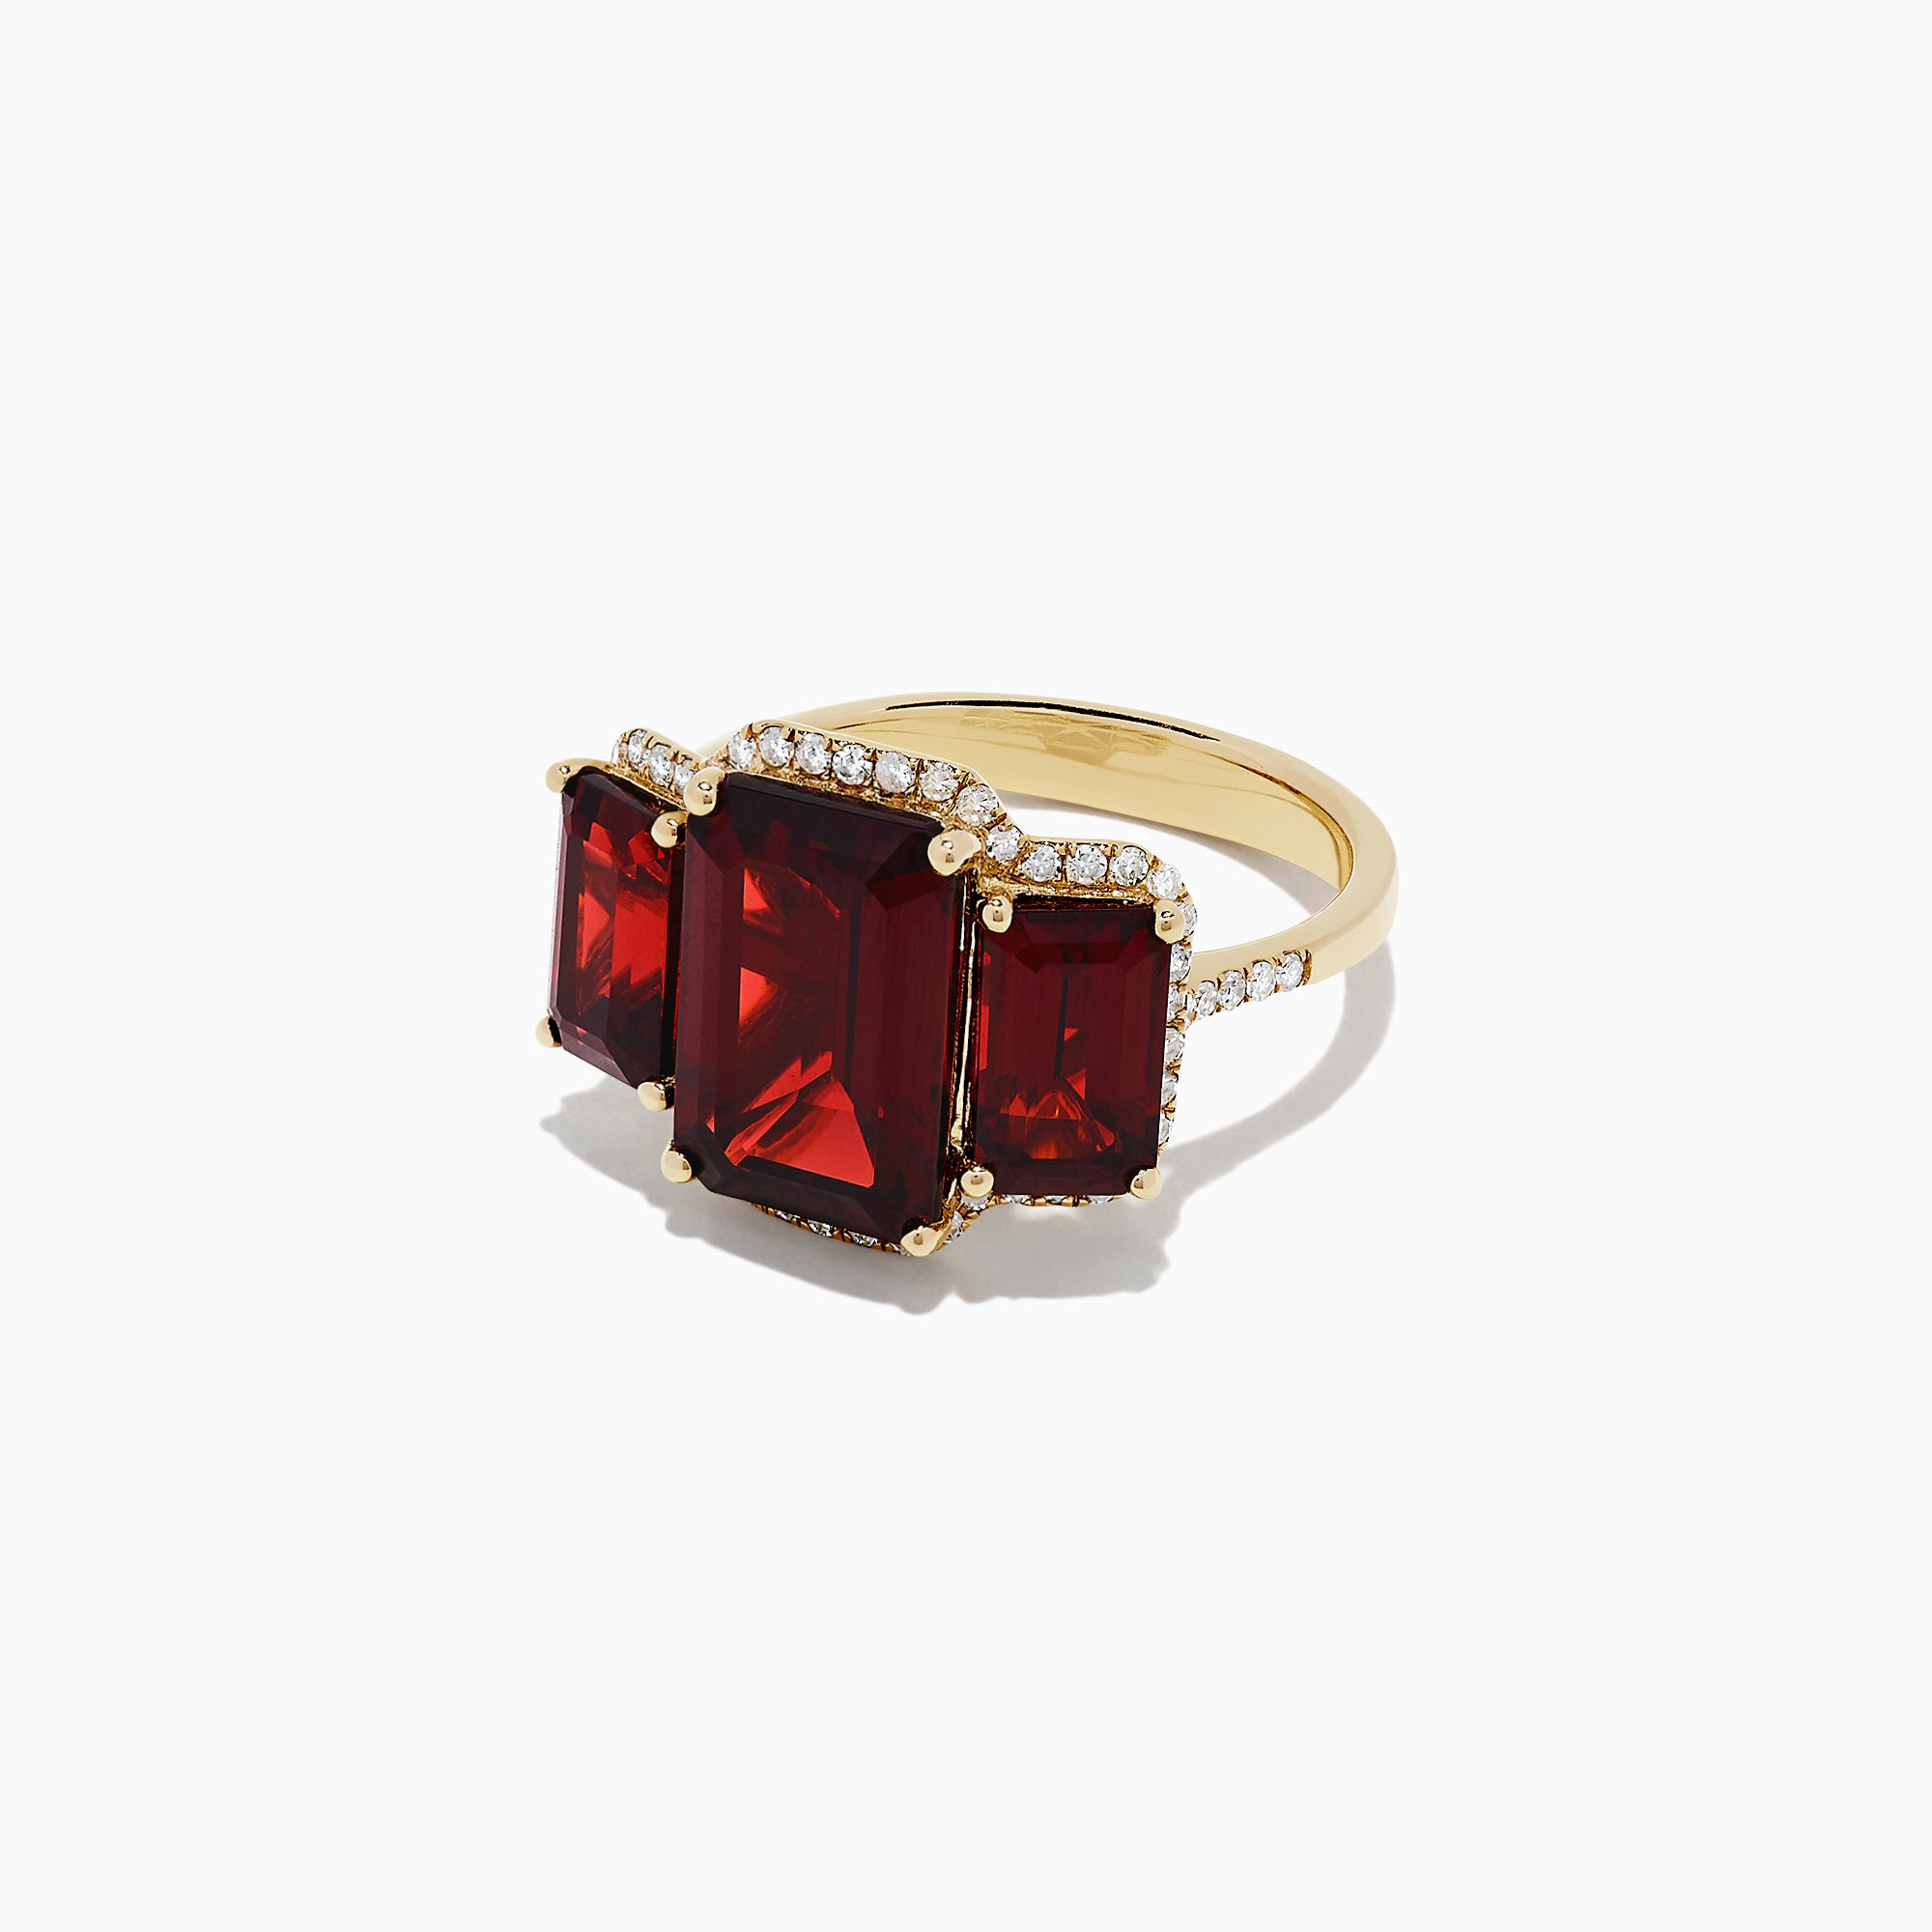 Effy Bordeaux 14K Yellow Gold Garnet and Diamond Three Stone Ring, 8.62 TCW